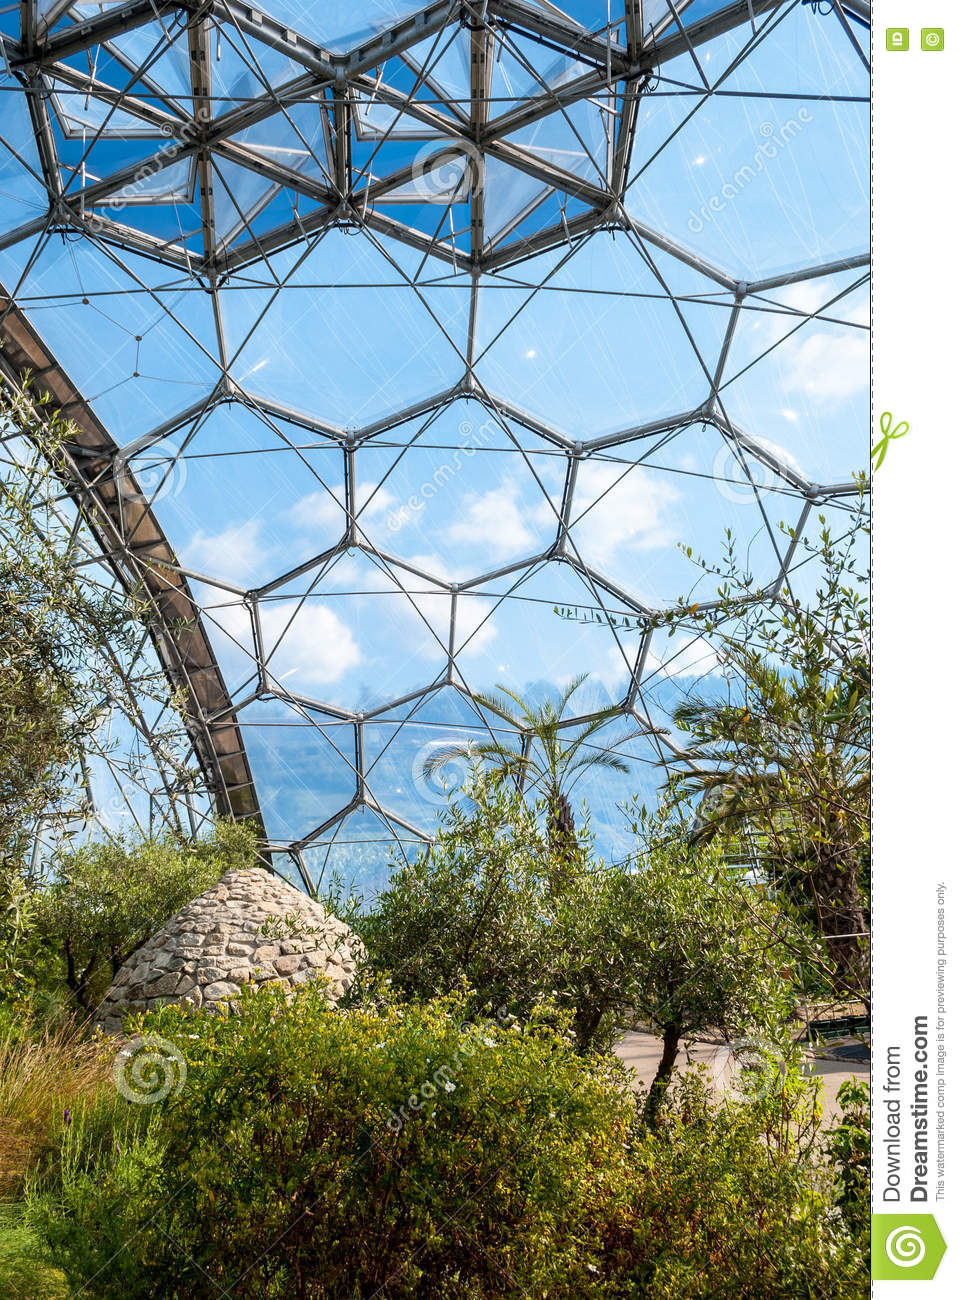 Interior Of Mediterranean Biome Eden Project Cornwall UK Showing Hexagonal Structure Dome